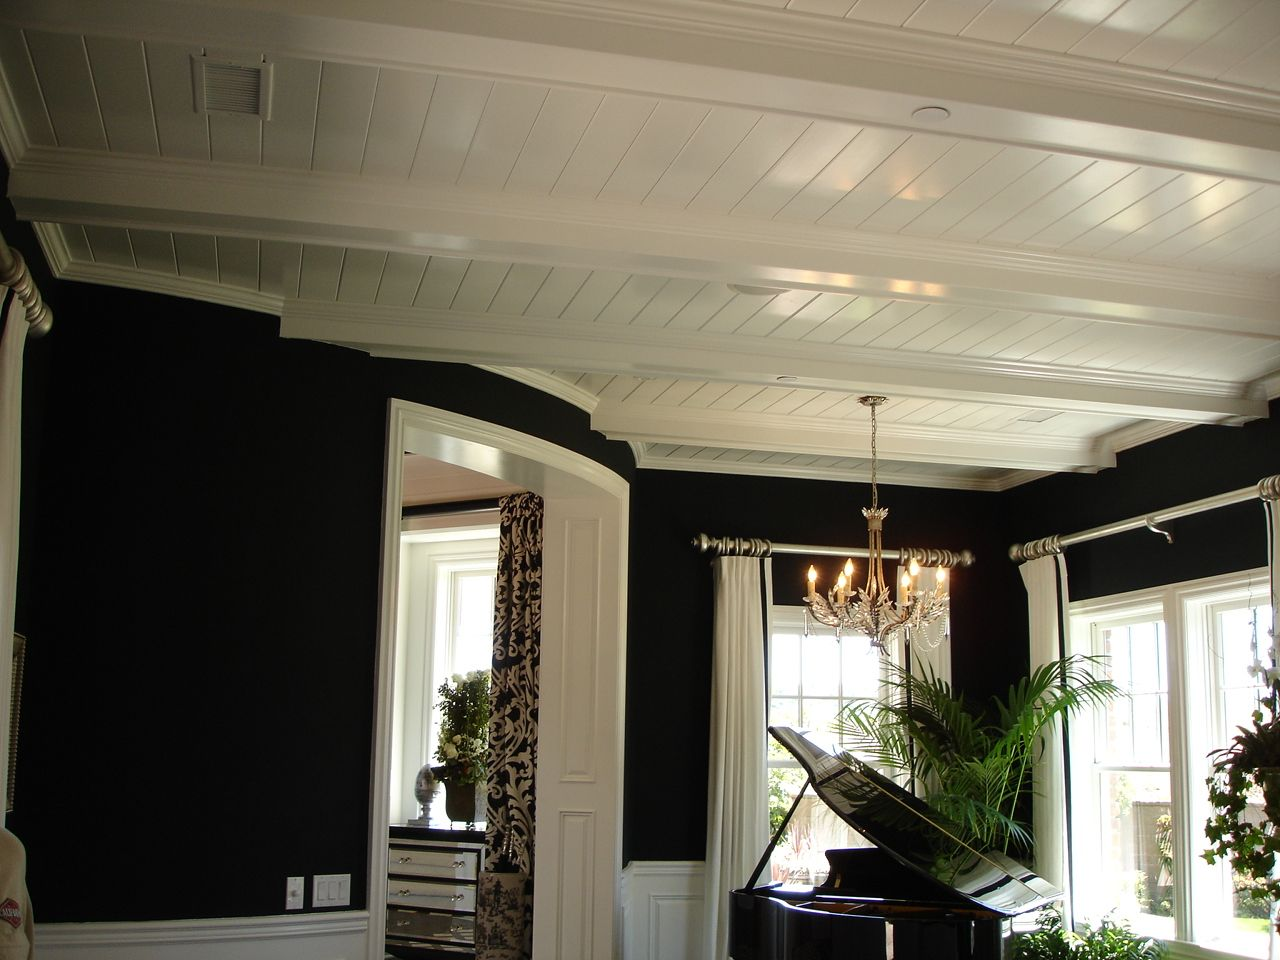 beamed ceiling Designs | Thread: Suggestions for T&G panels in beam ceiling  design